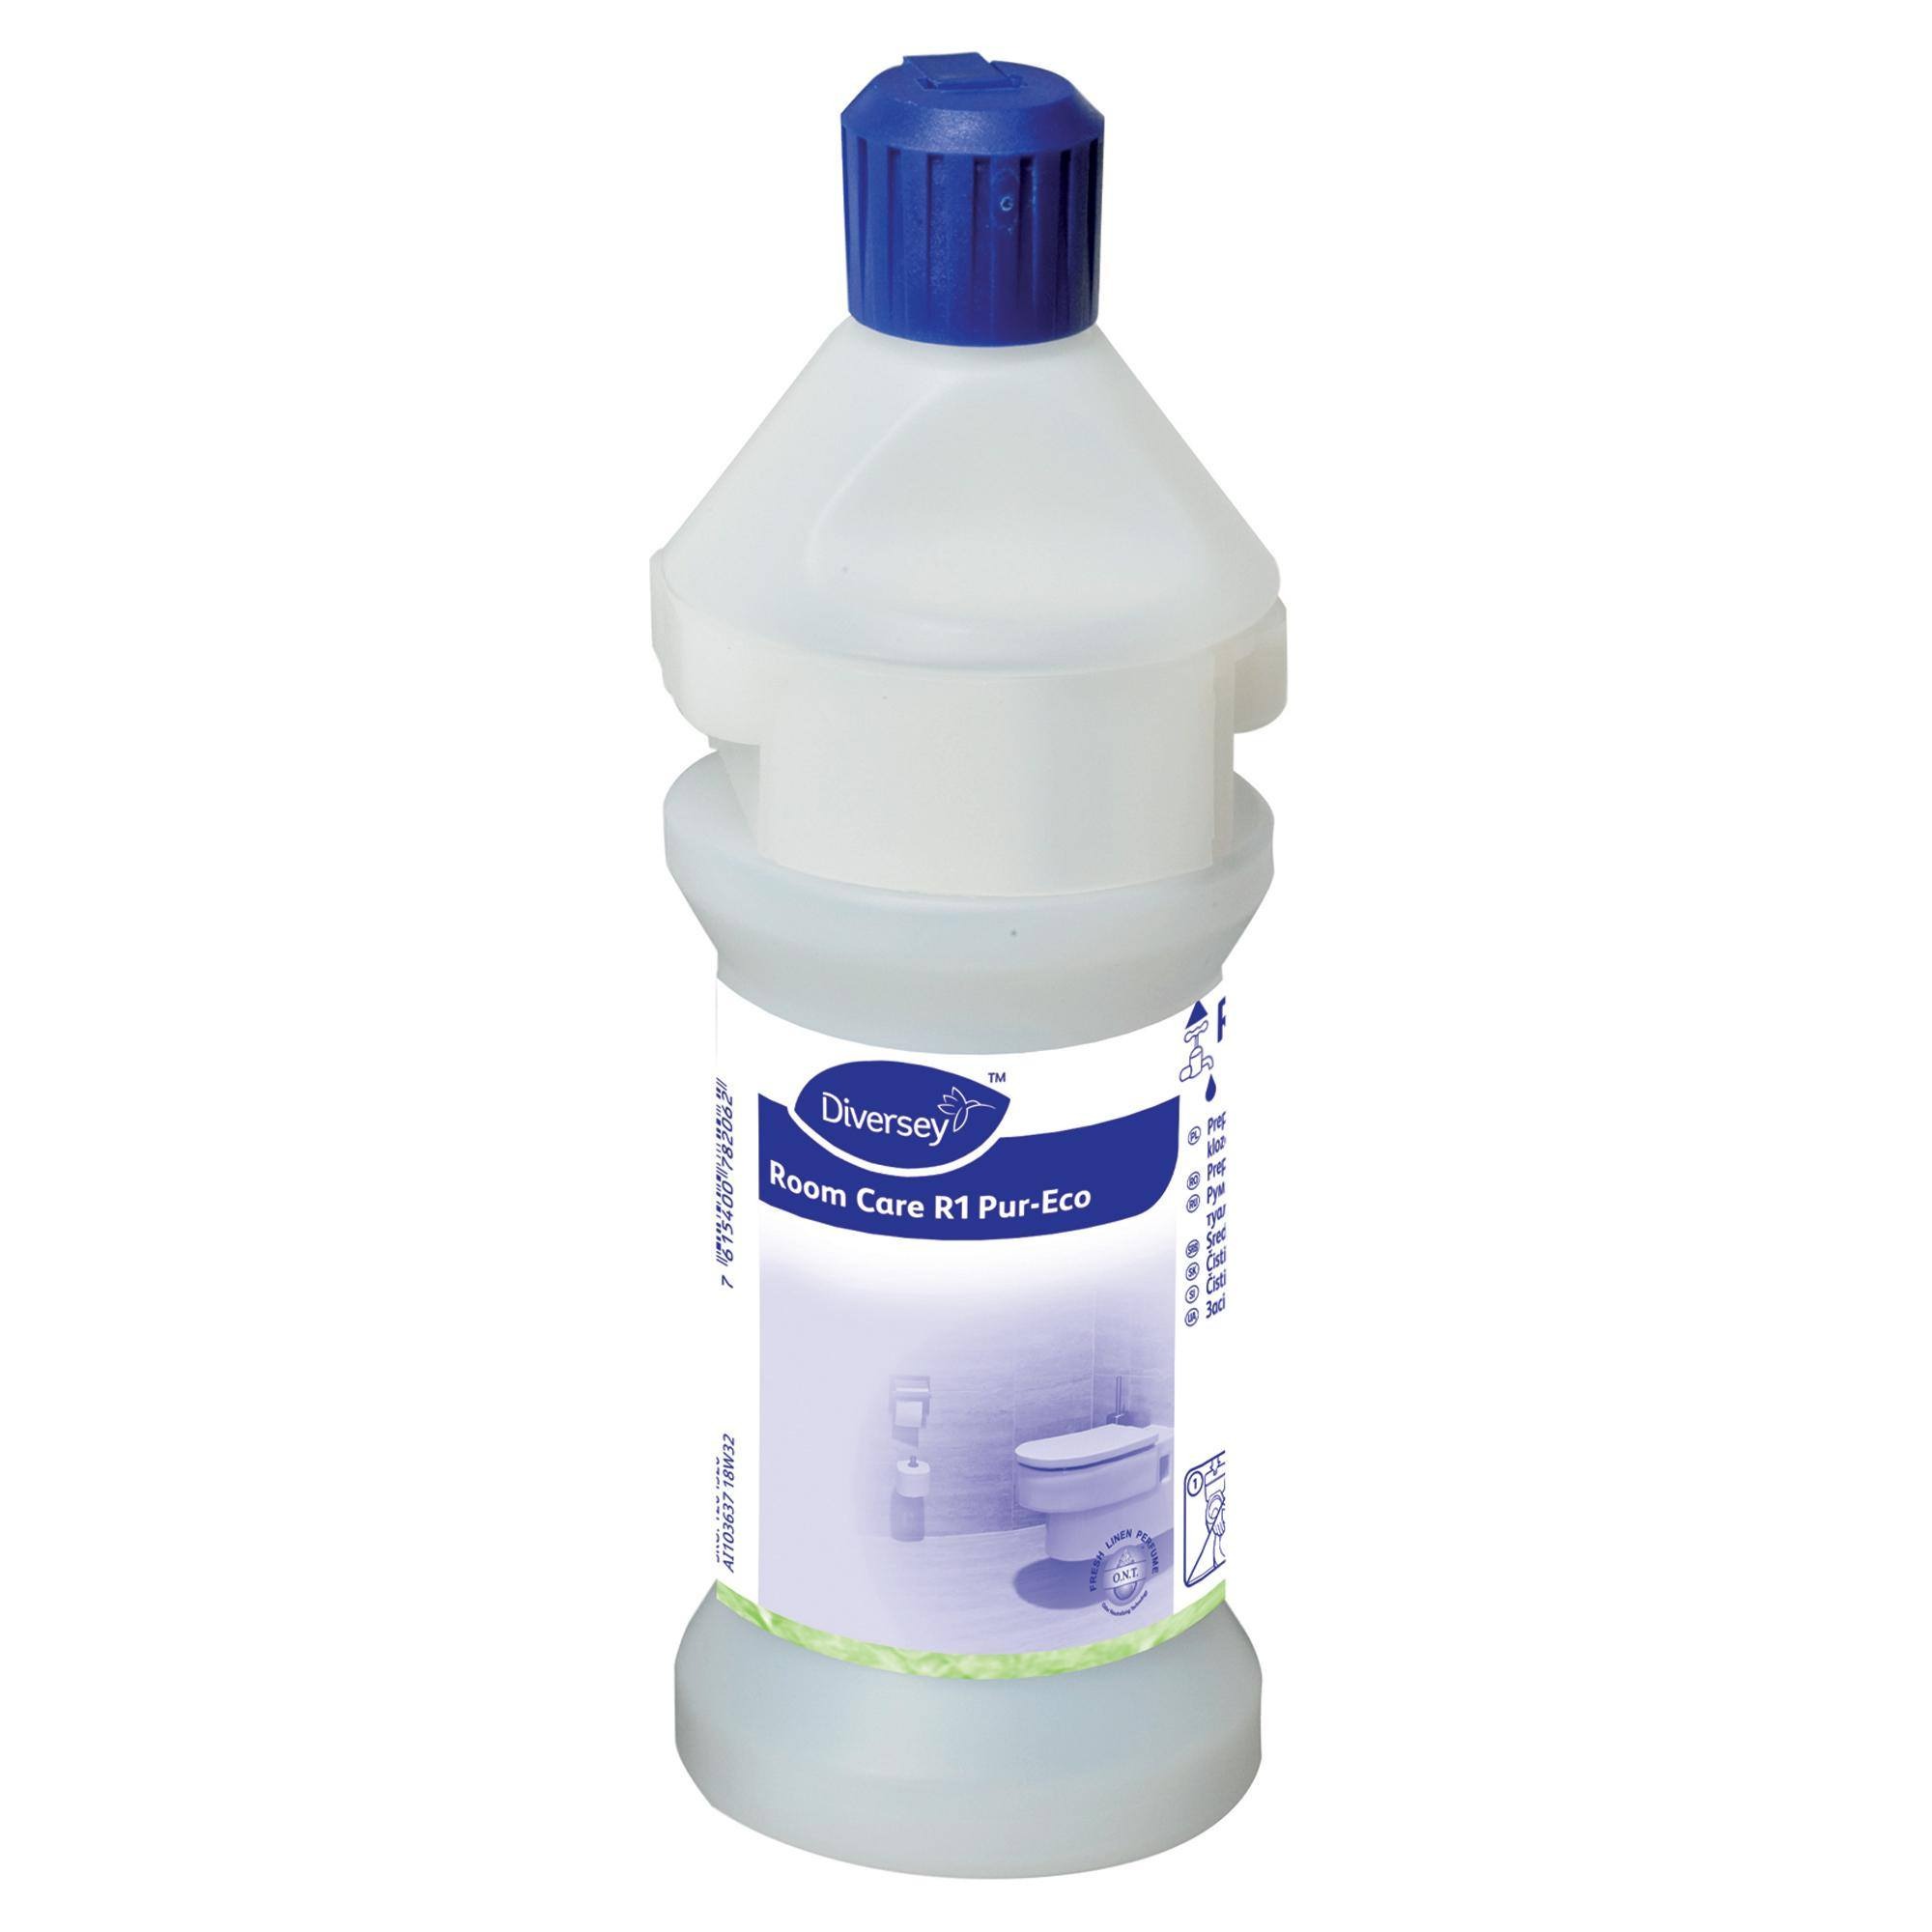 D1204320%20R1%20300ml%20BOTTLE%20KIT%202000x2000px-1.jpg